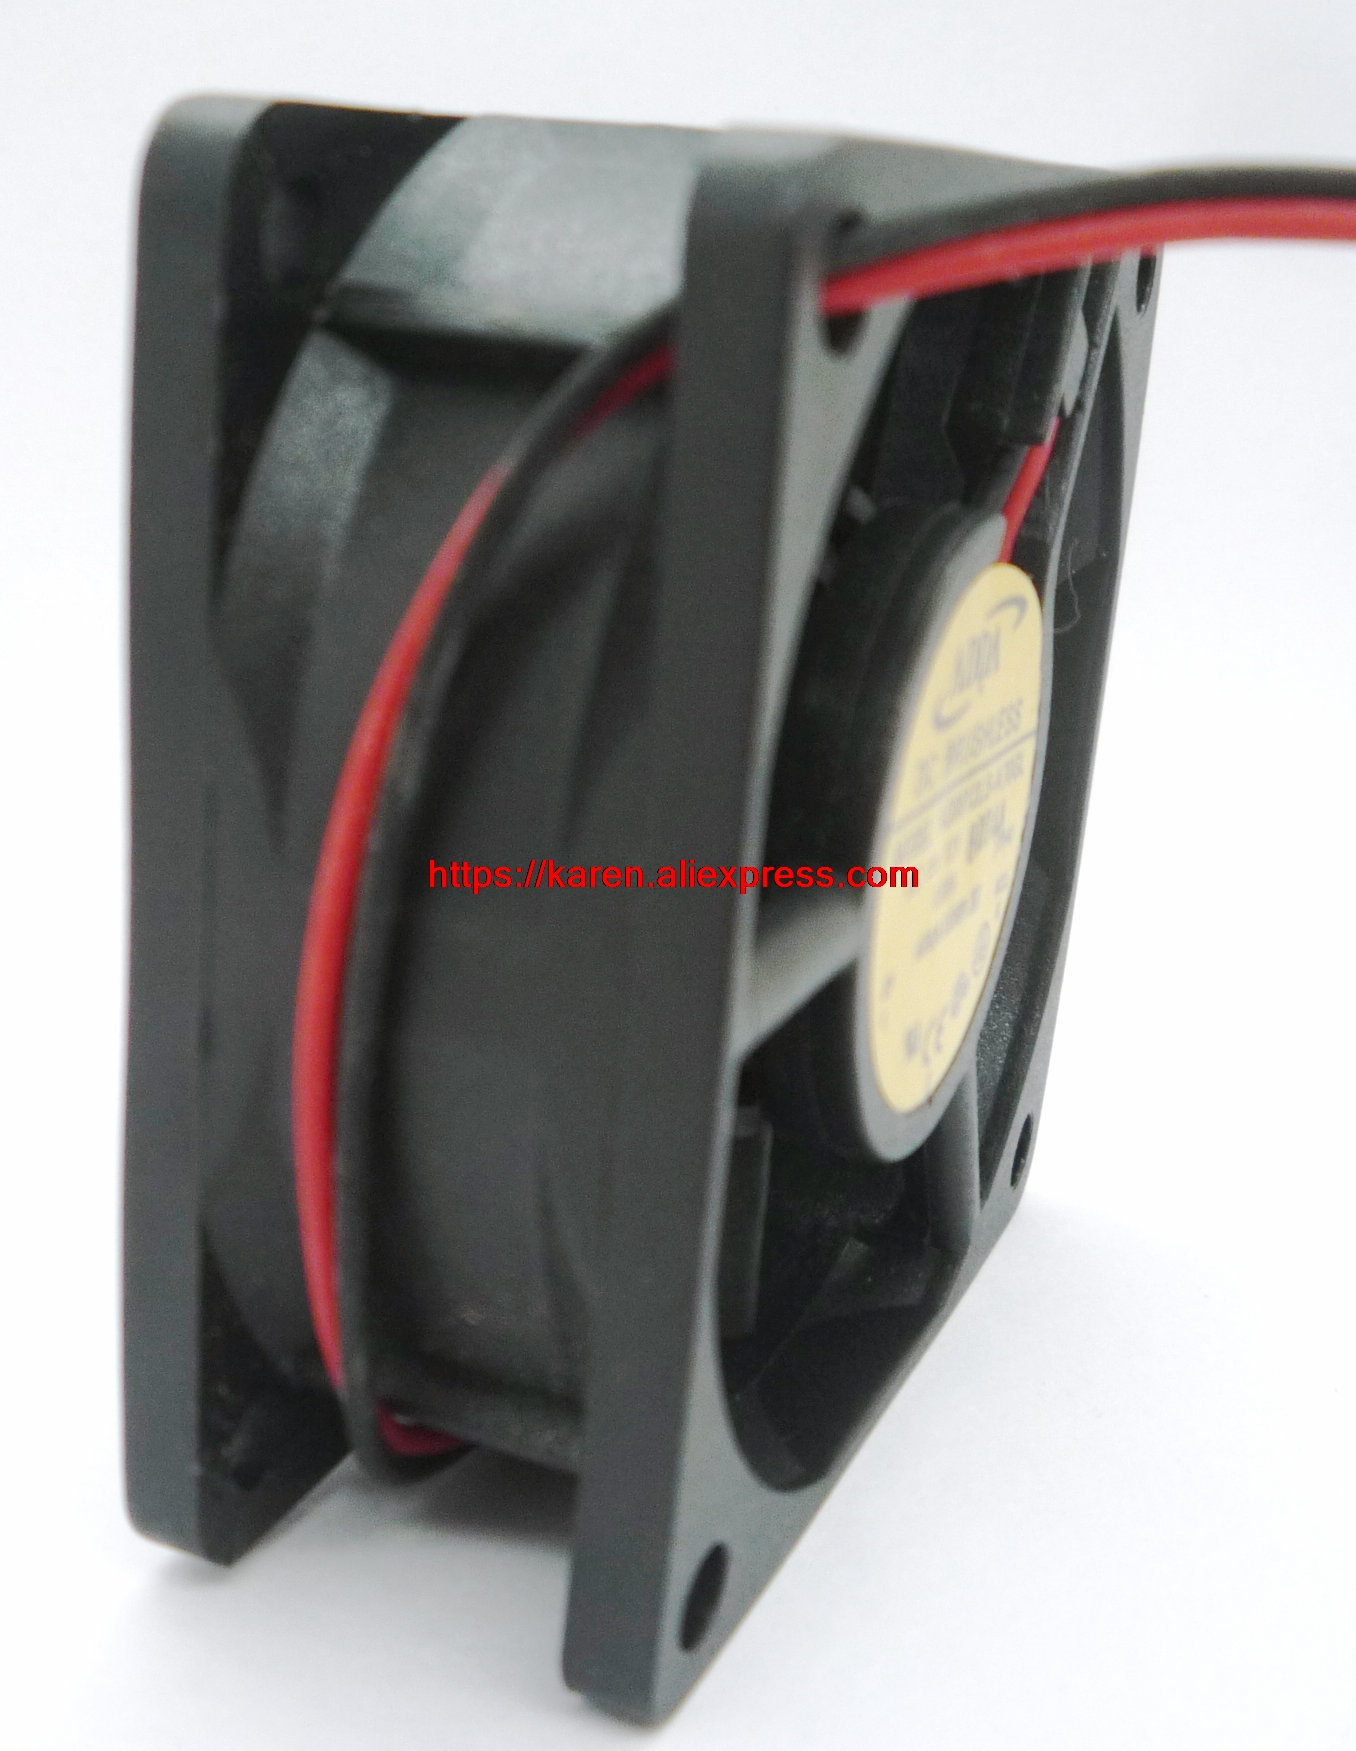 Fans & Cooling Computer & Office Adda 6025 12v Ad0612ls-a70gl Ad0612lx-a70gl Hdf6025l-12hb-50a 0.14a Dfb602512h 1.3w Cf-12625b F-625l12f Mmf-06b12dm Cooling Fan Sophisticated Technologies